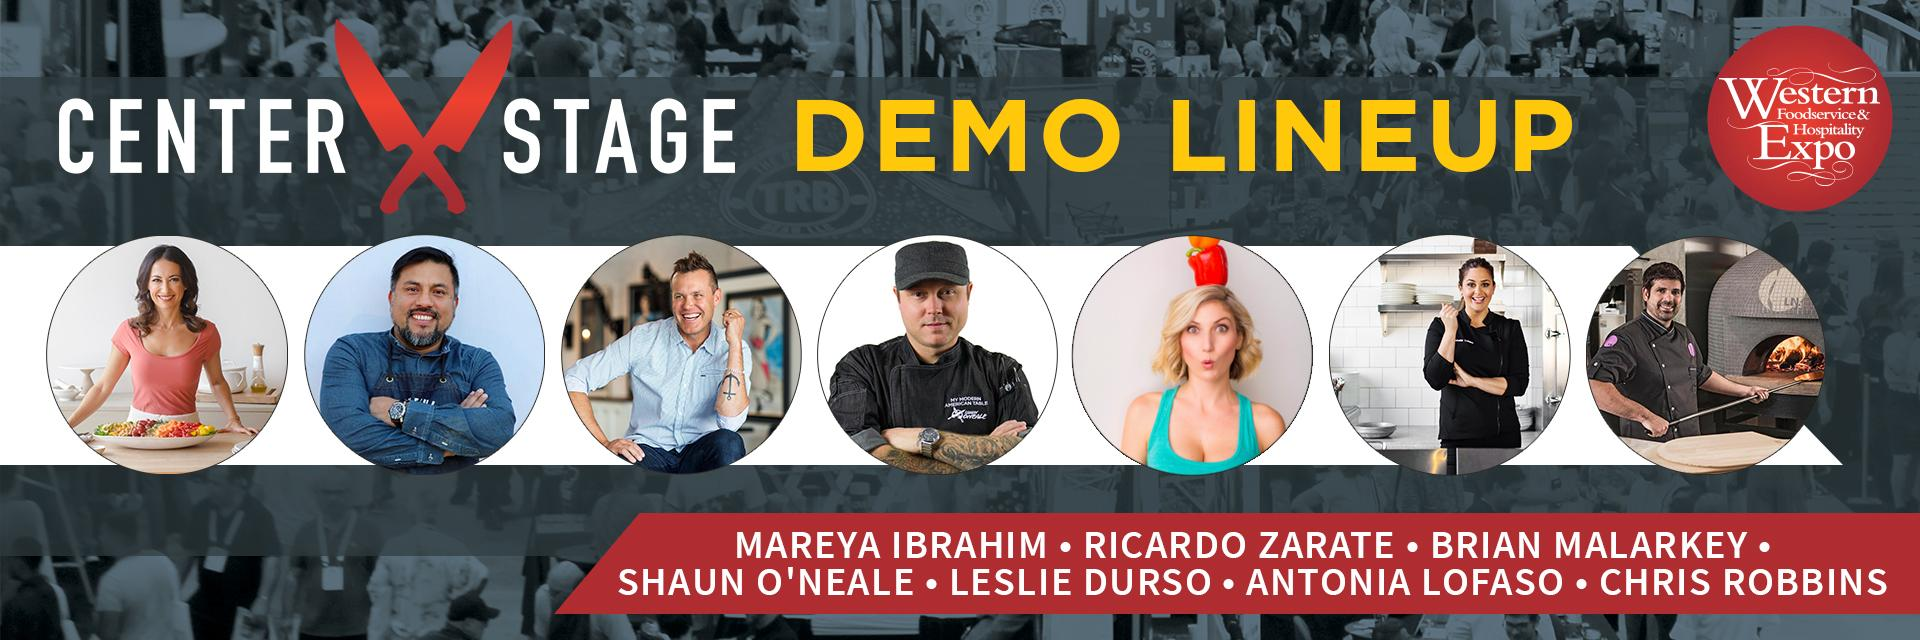 Western Food Expo Center Stage Culinary Demos